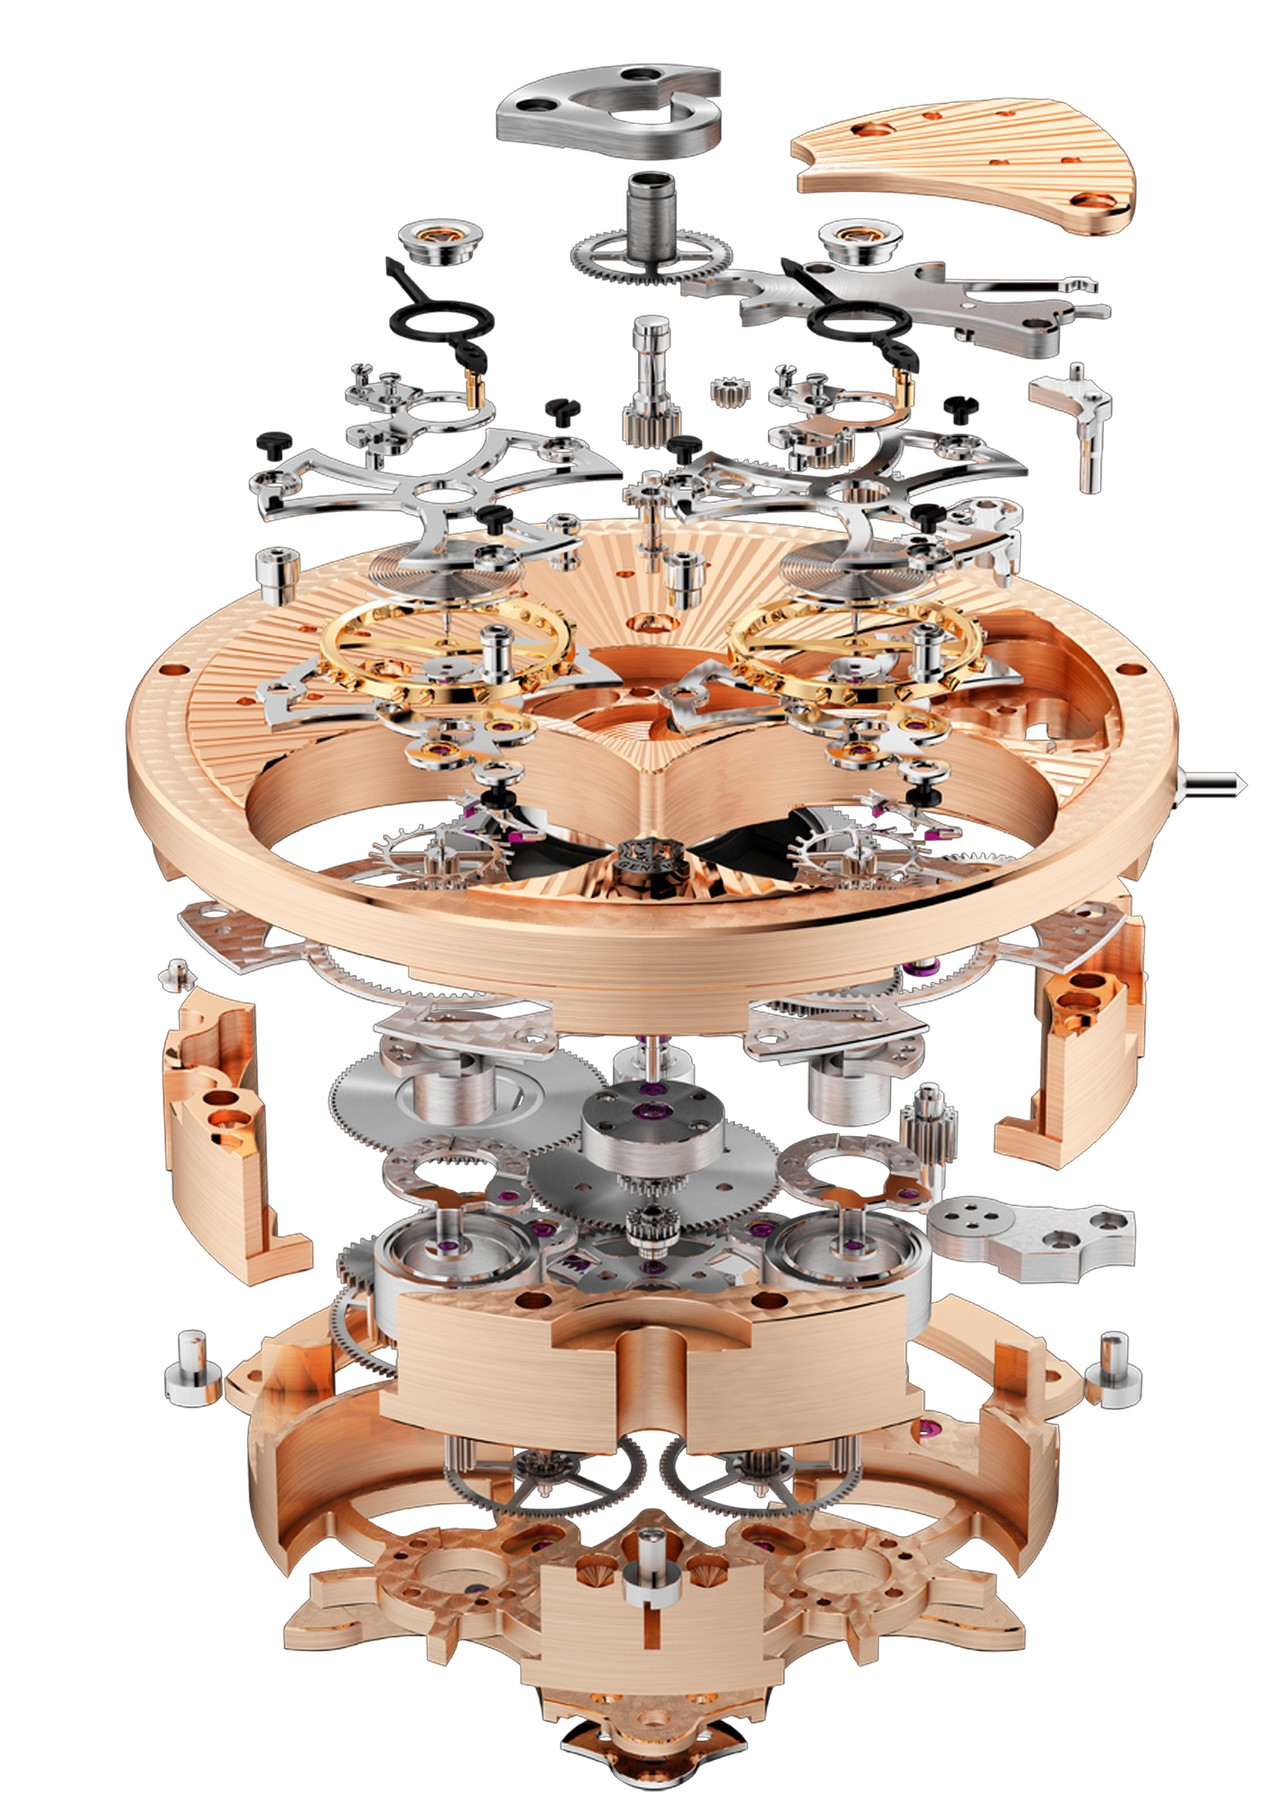 MANUFACTURE ROGER DUBUIS - Movement RD100